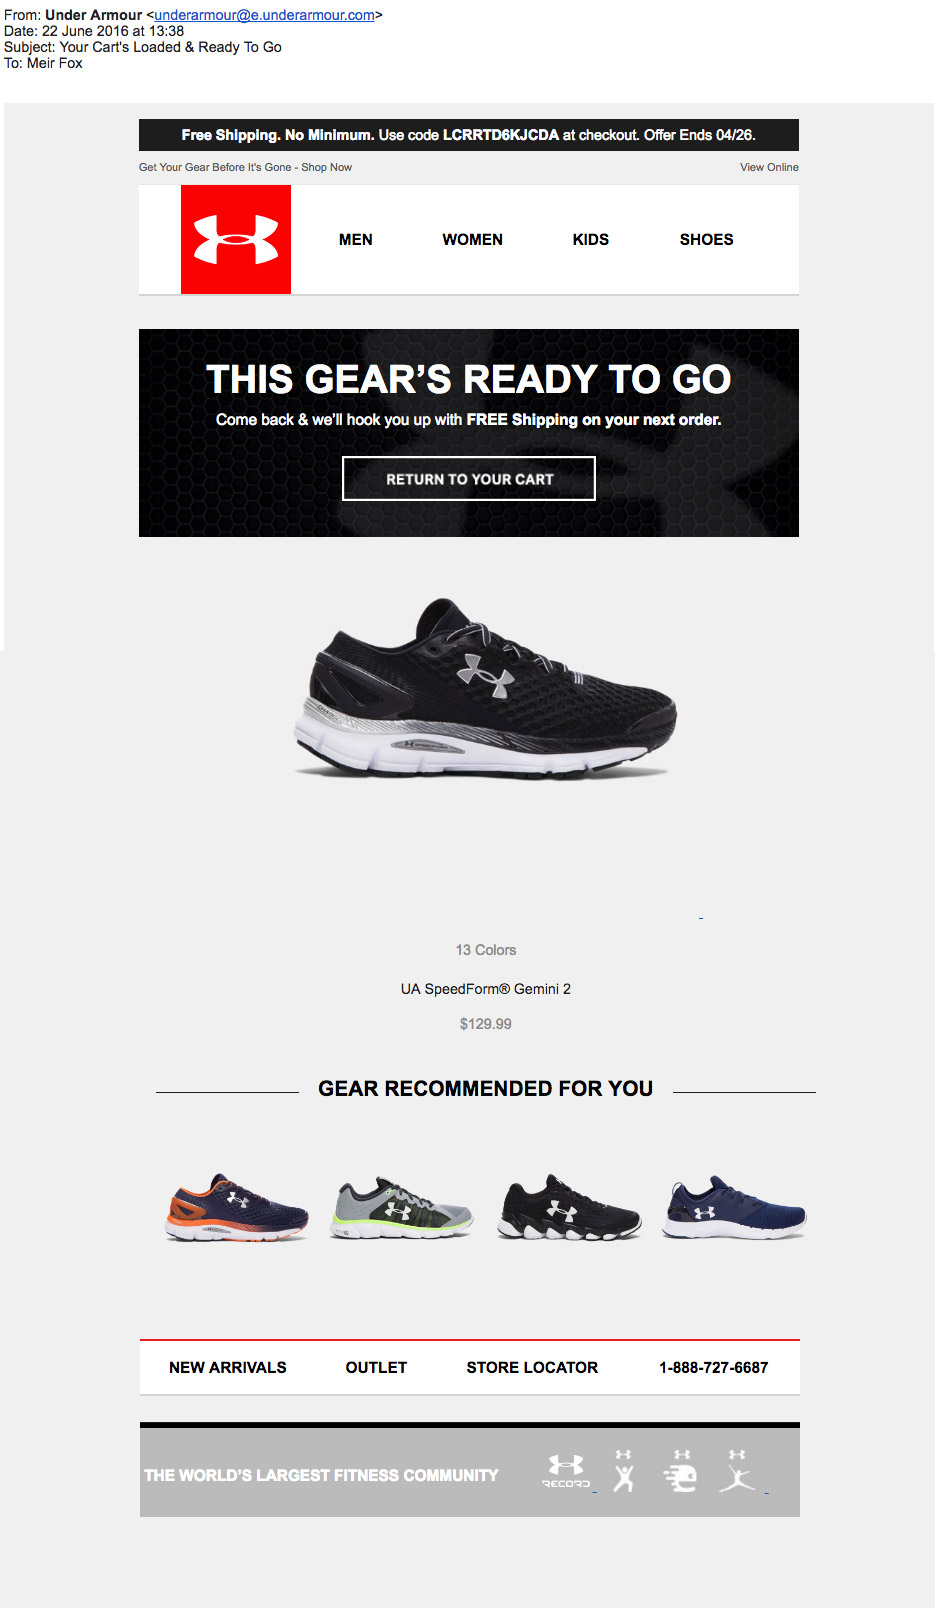 under armour cart abandonment email